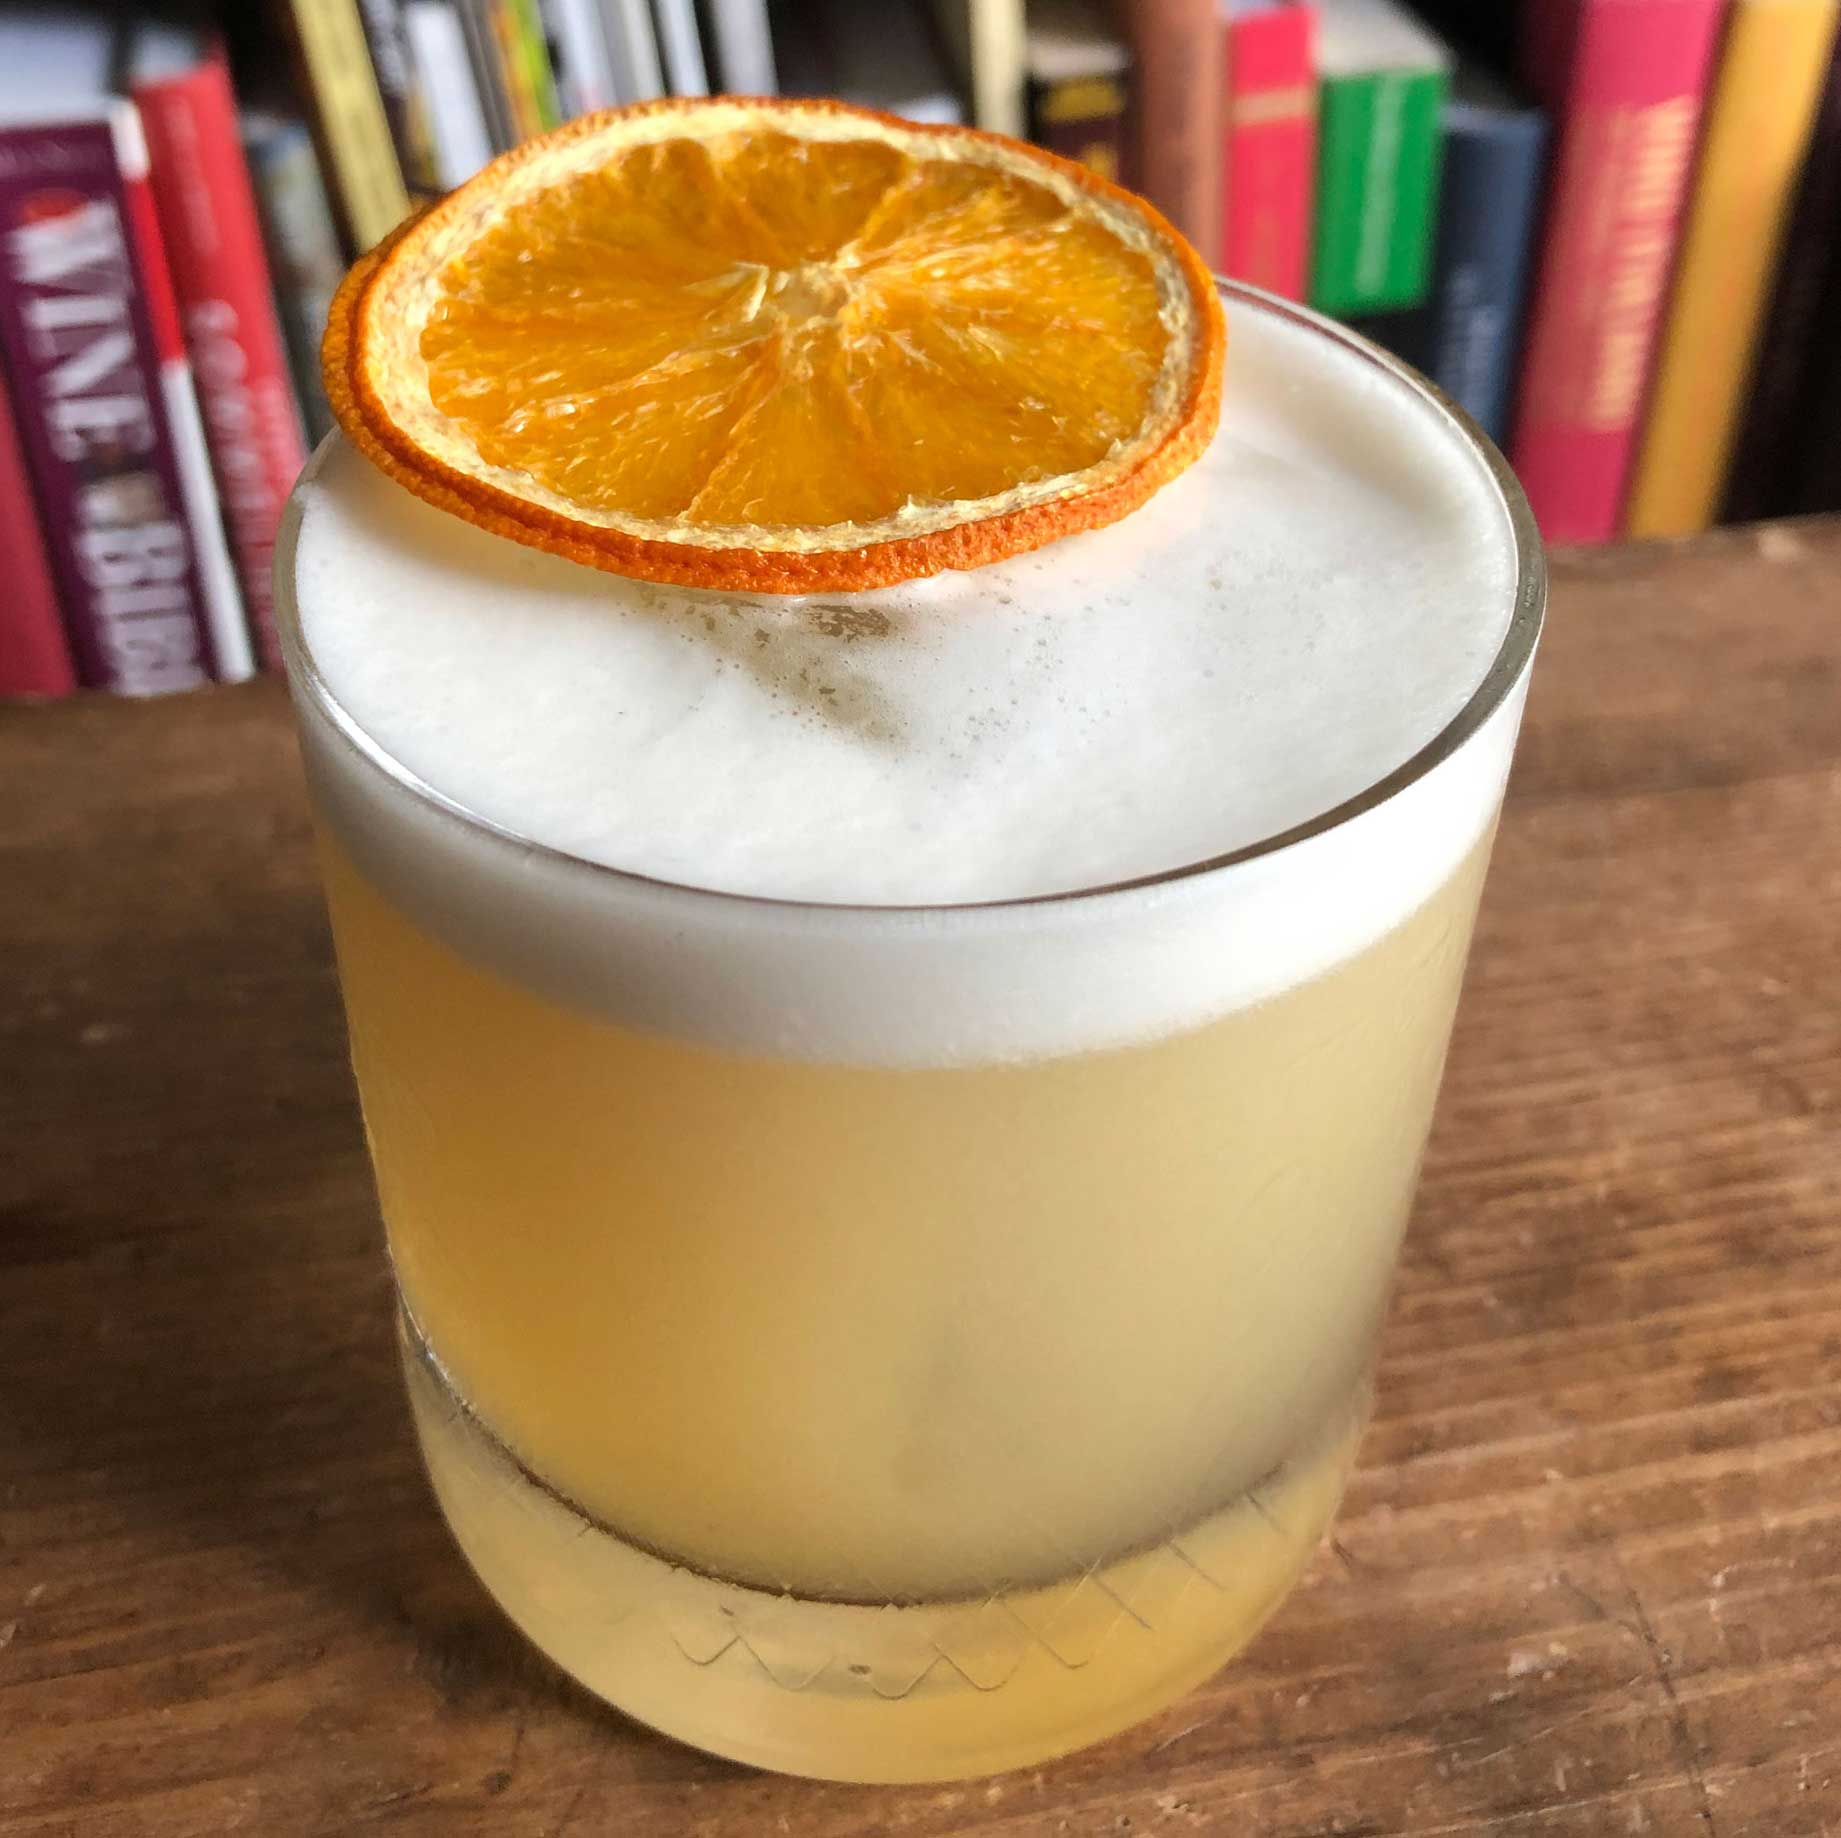 An example of the Peach Whiskey Sour, the mixed drink (sour) featuring bourbon whiskey, Rothman & Winter Orchard Peach Liqueur, egg white, lemon juice, and simple syrup; photo by Lee Edwards